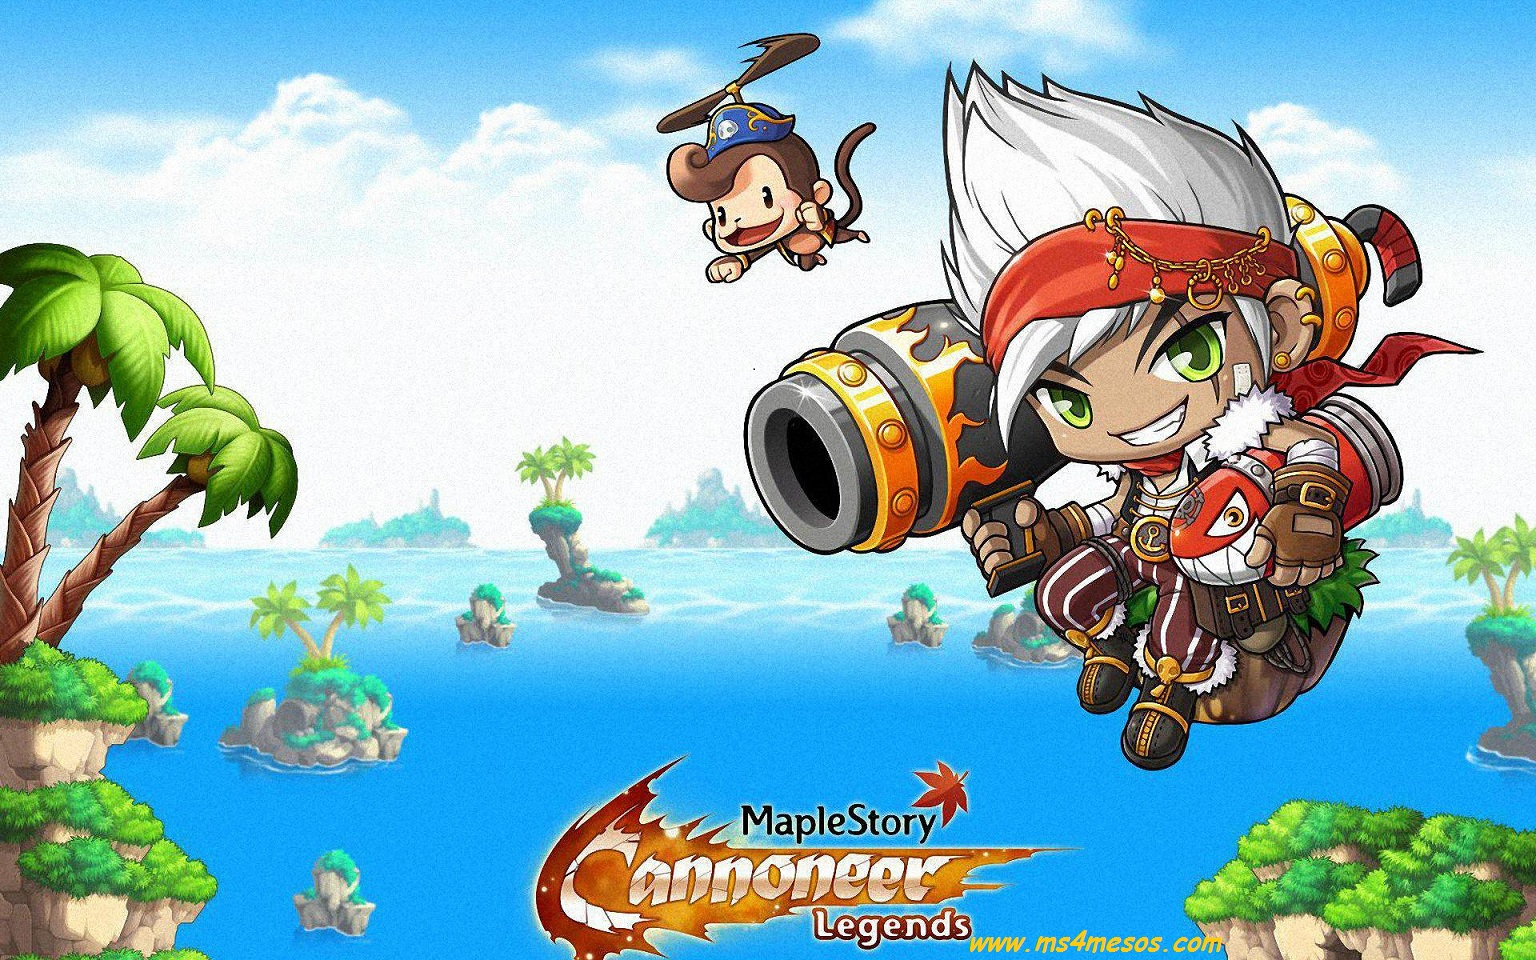 Nexon Brings the Blaze Wizard to Pocket MapleStory